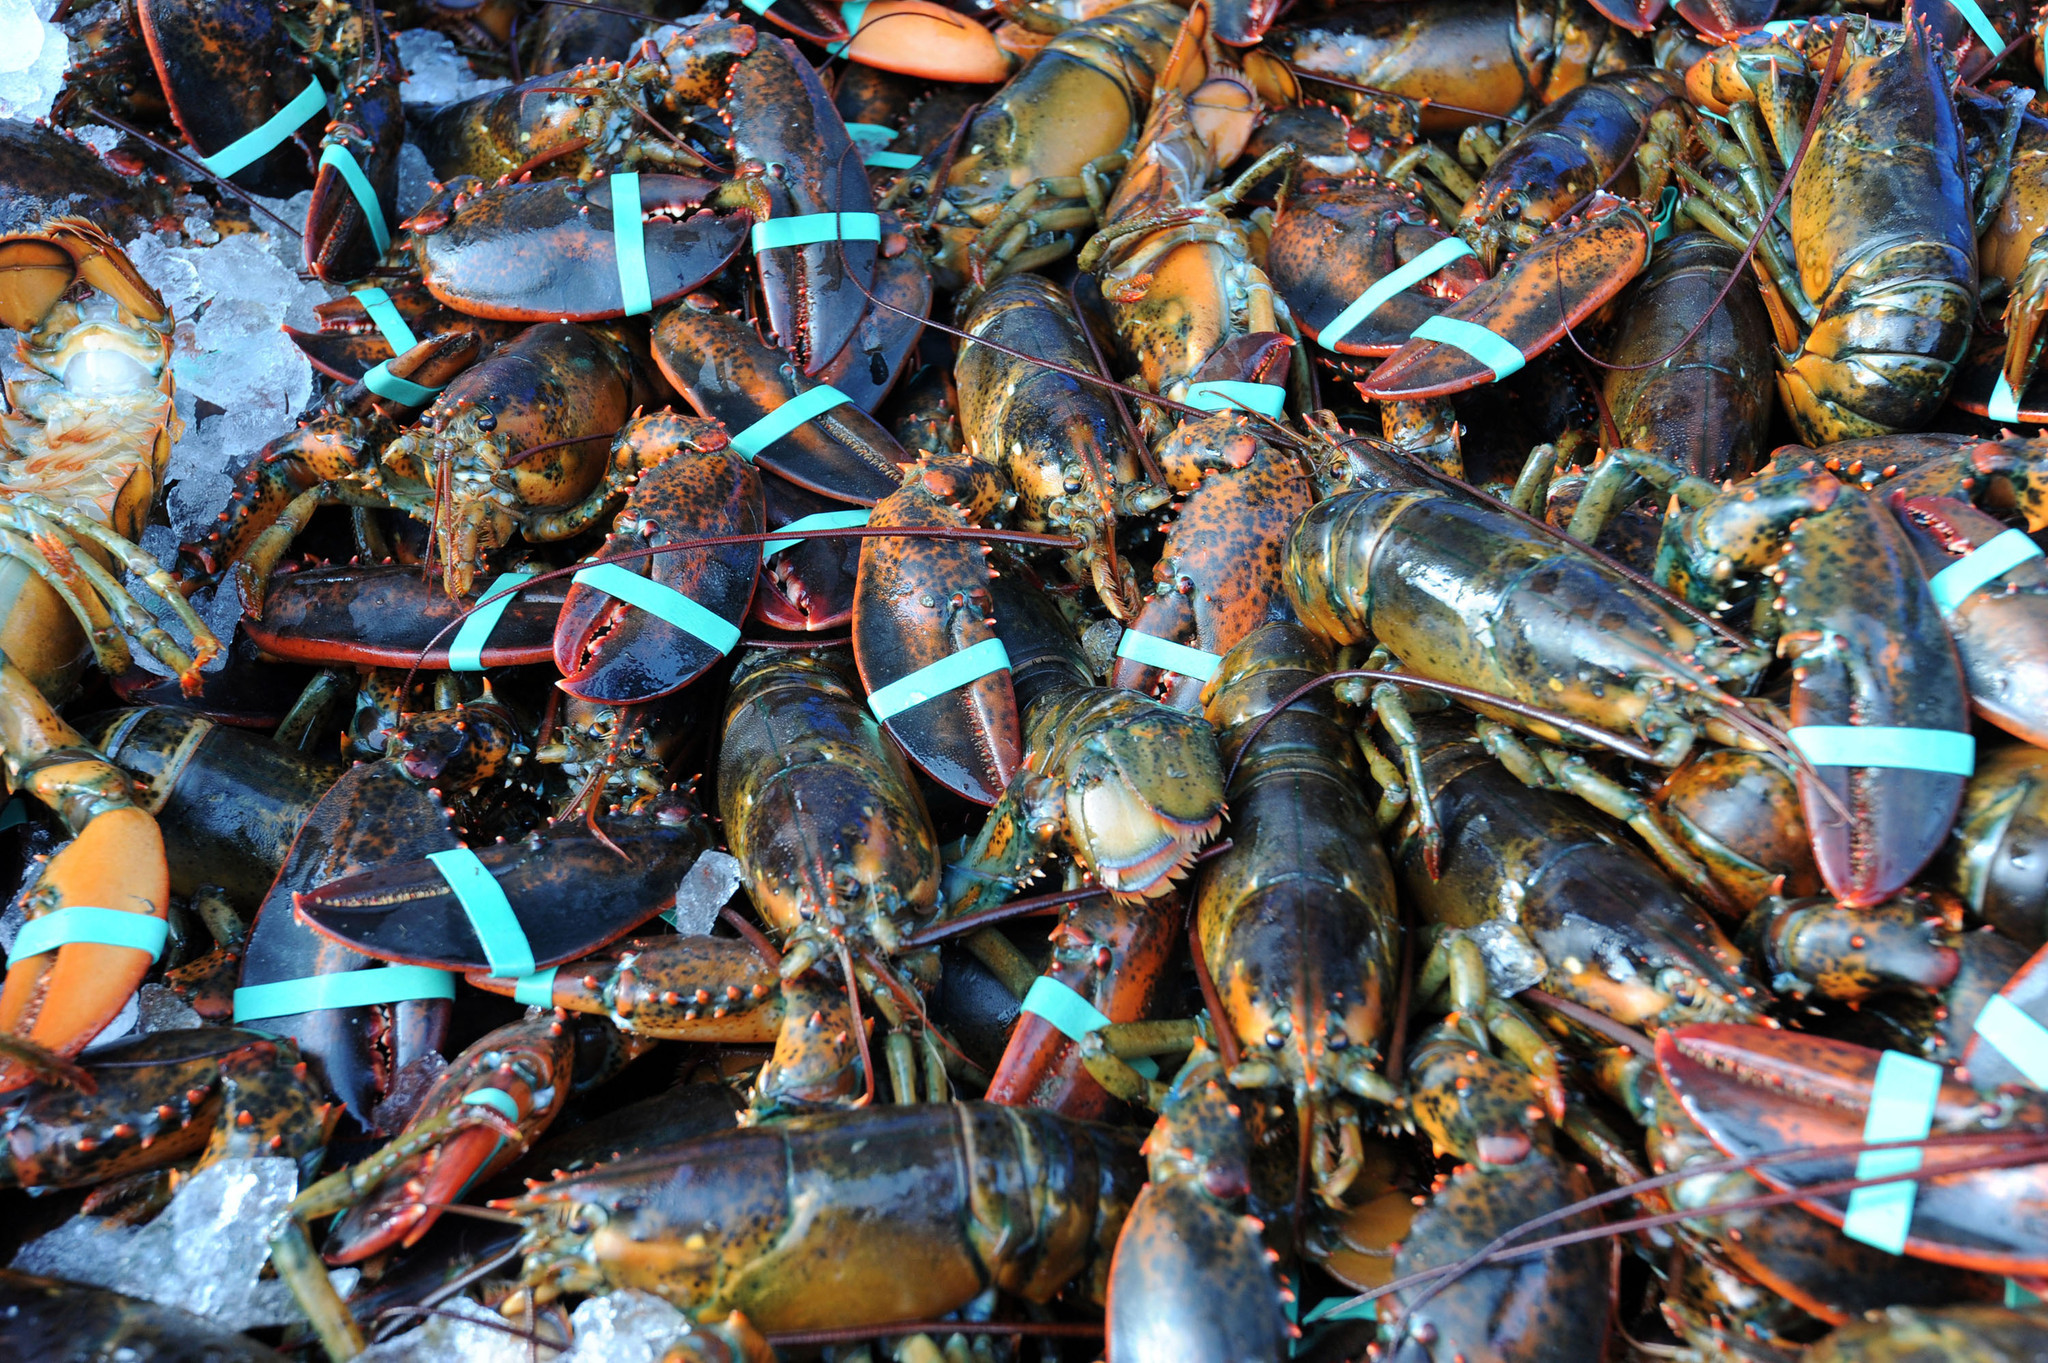 New u s recommendations aimed at stopping seafood fraud for Fish market maryland